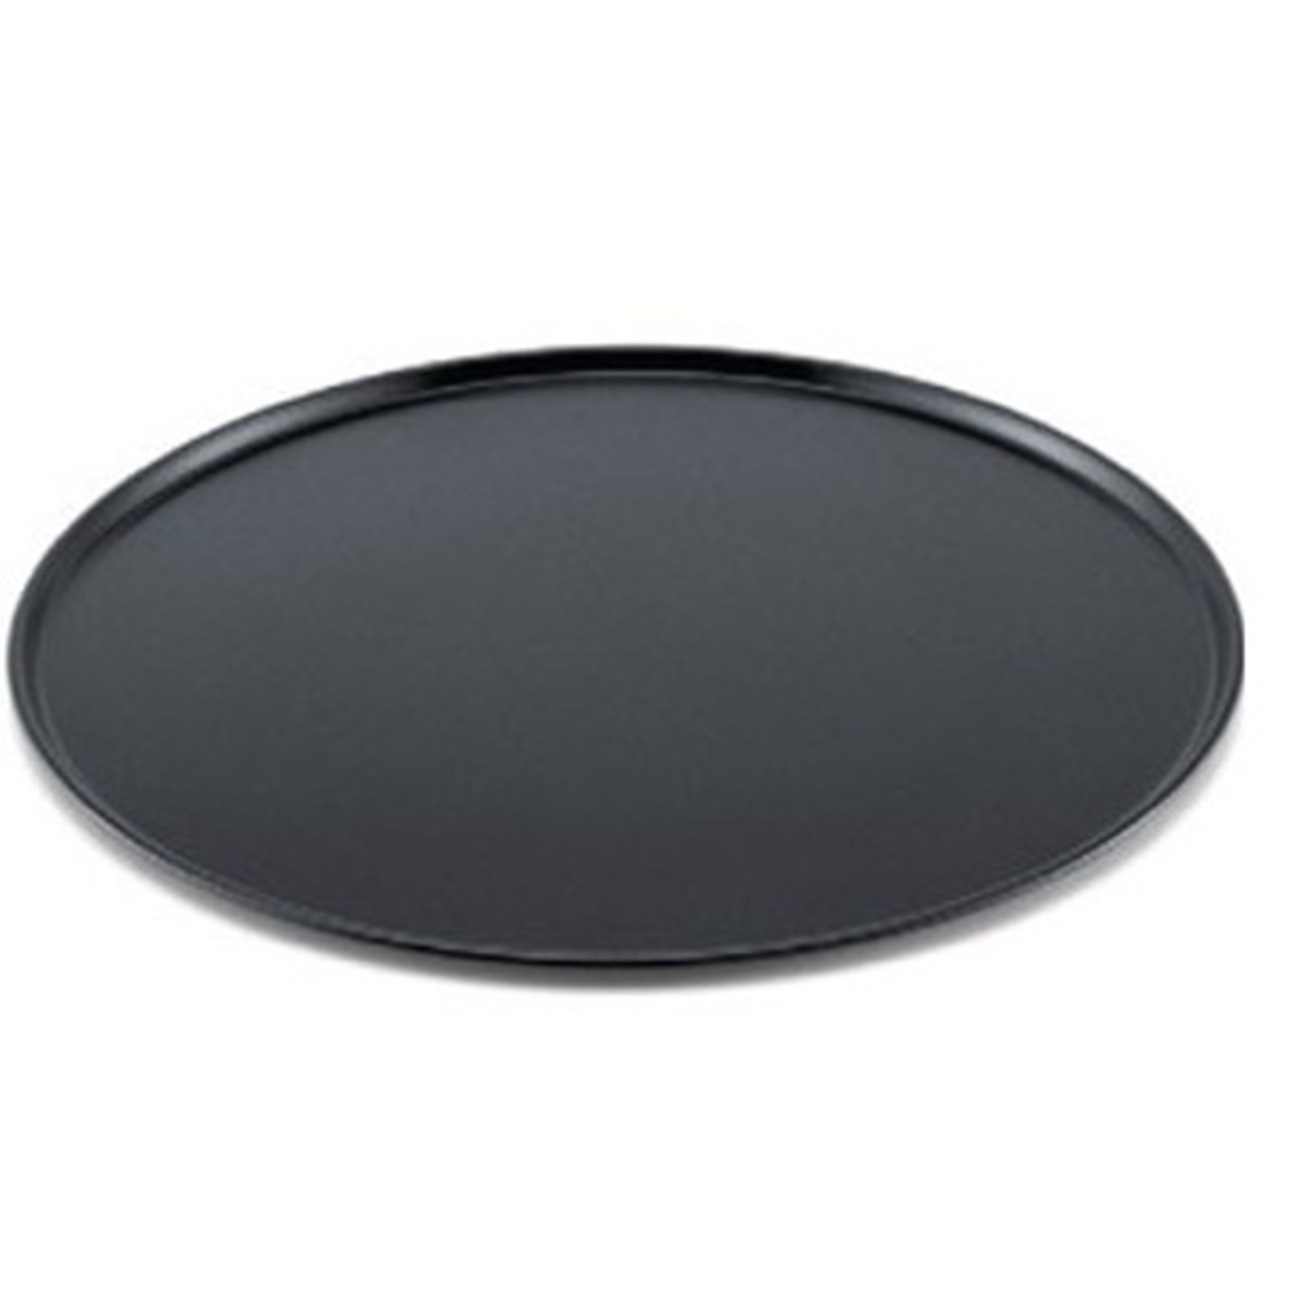 "12"" Non-Stick Pizza Pan"